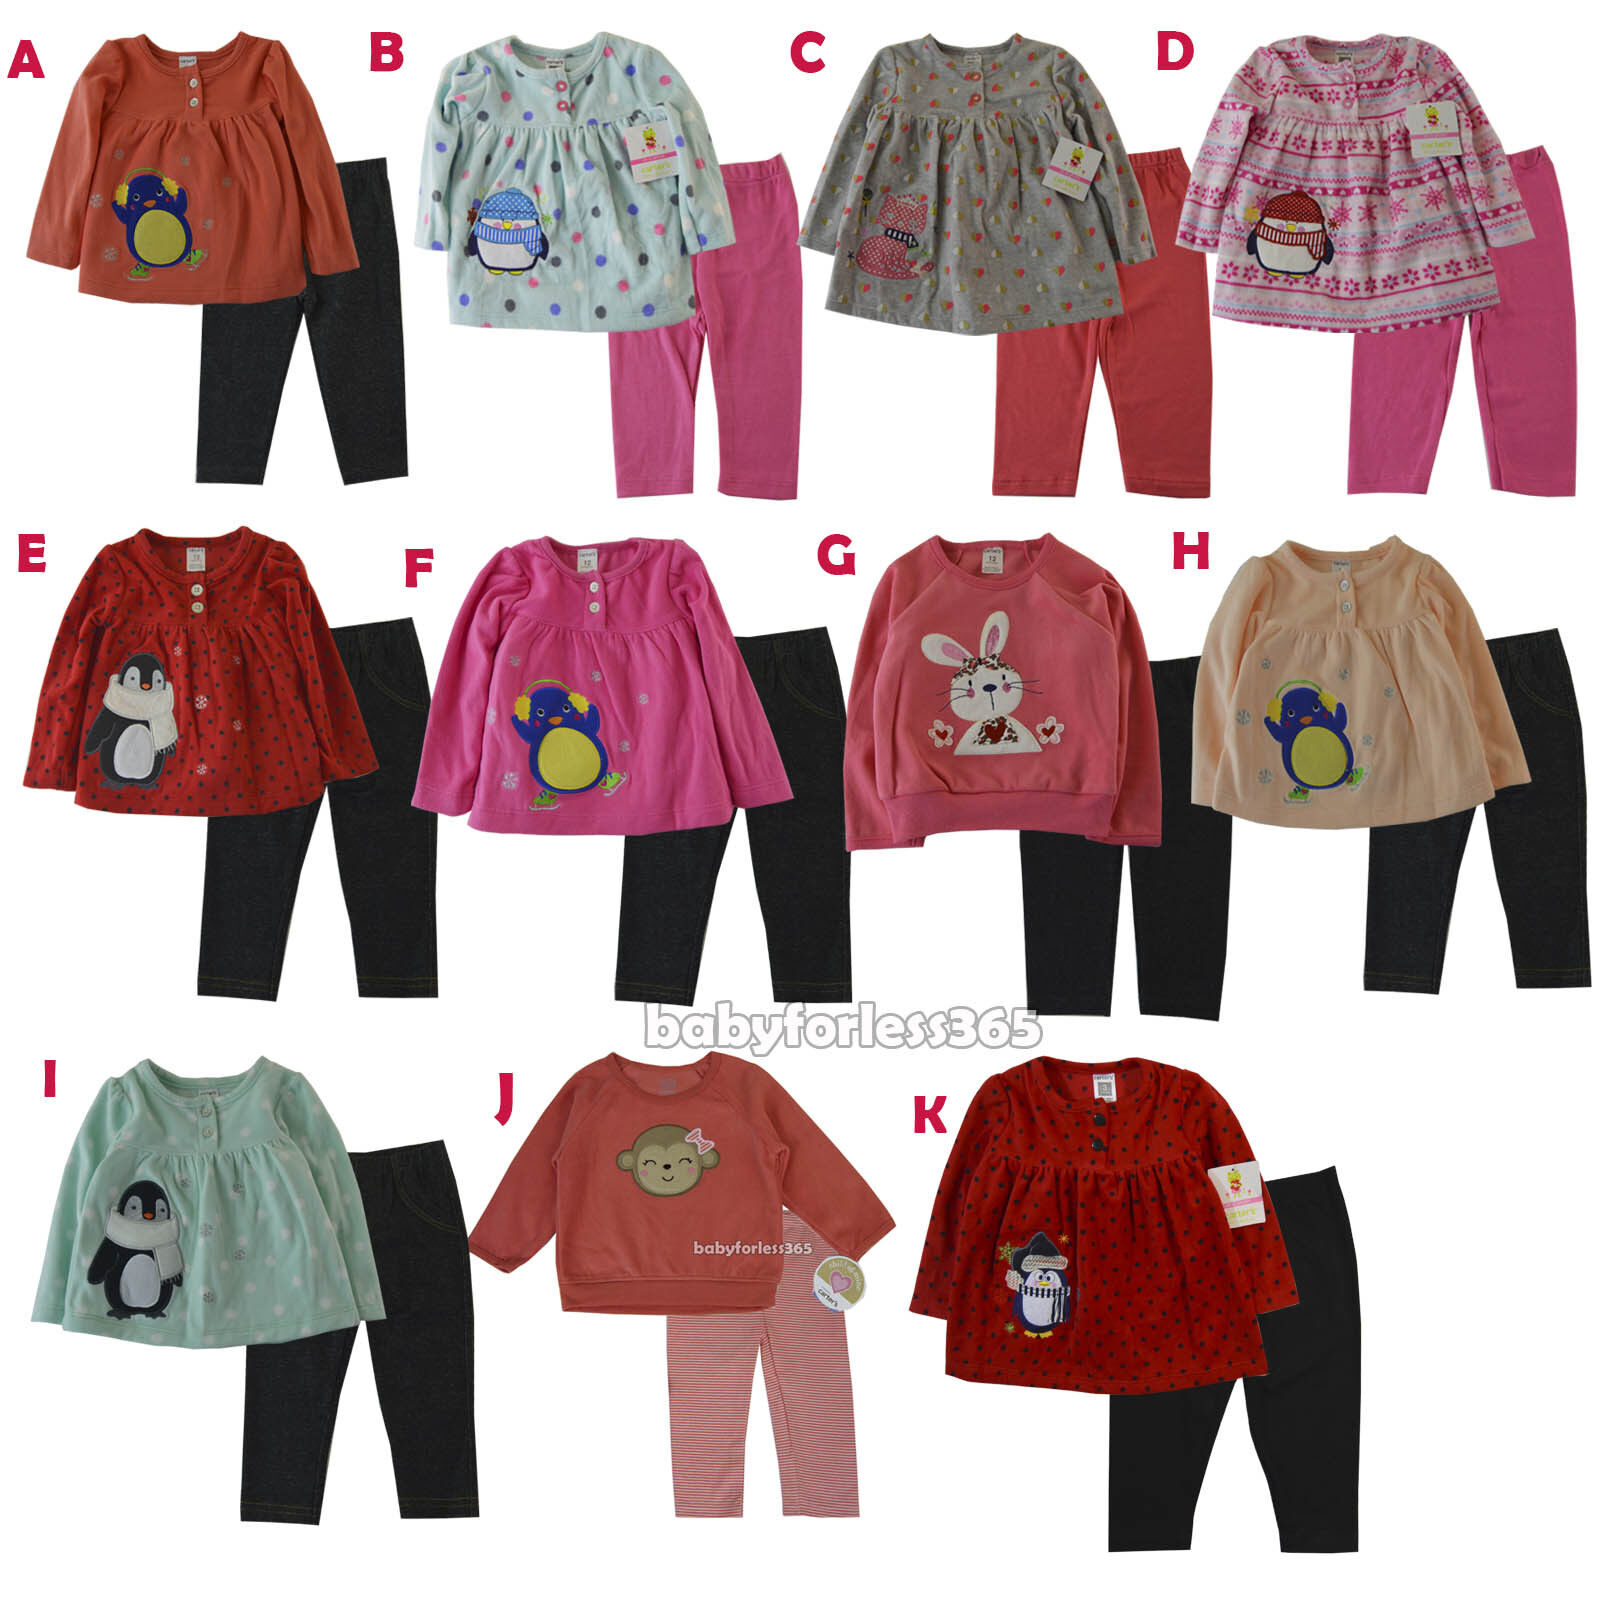 New Baby Girls Outfit Clothes 2 pc set Shirt legging Size 3 6 9 12 18 24 months